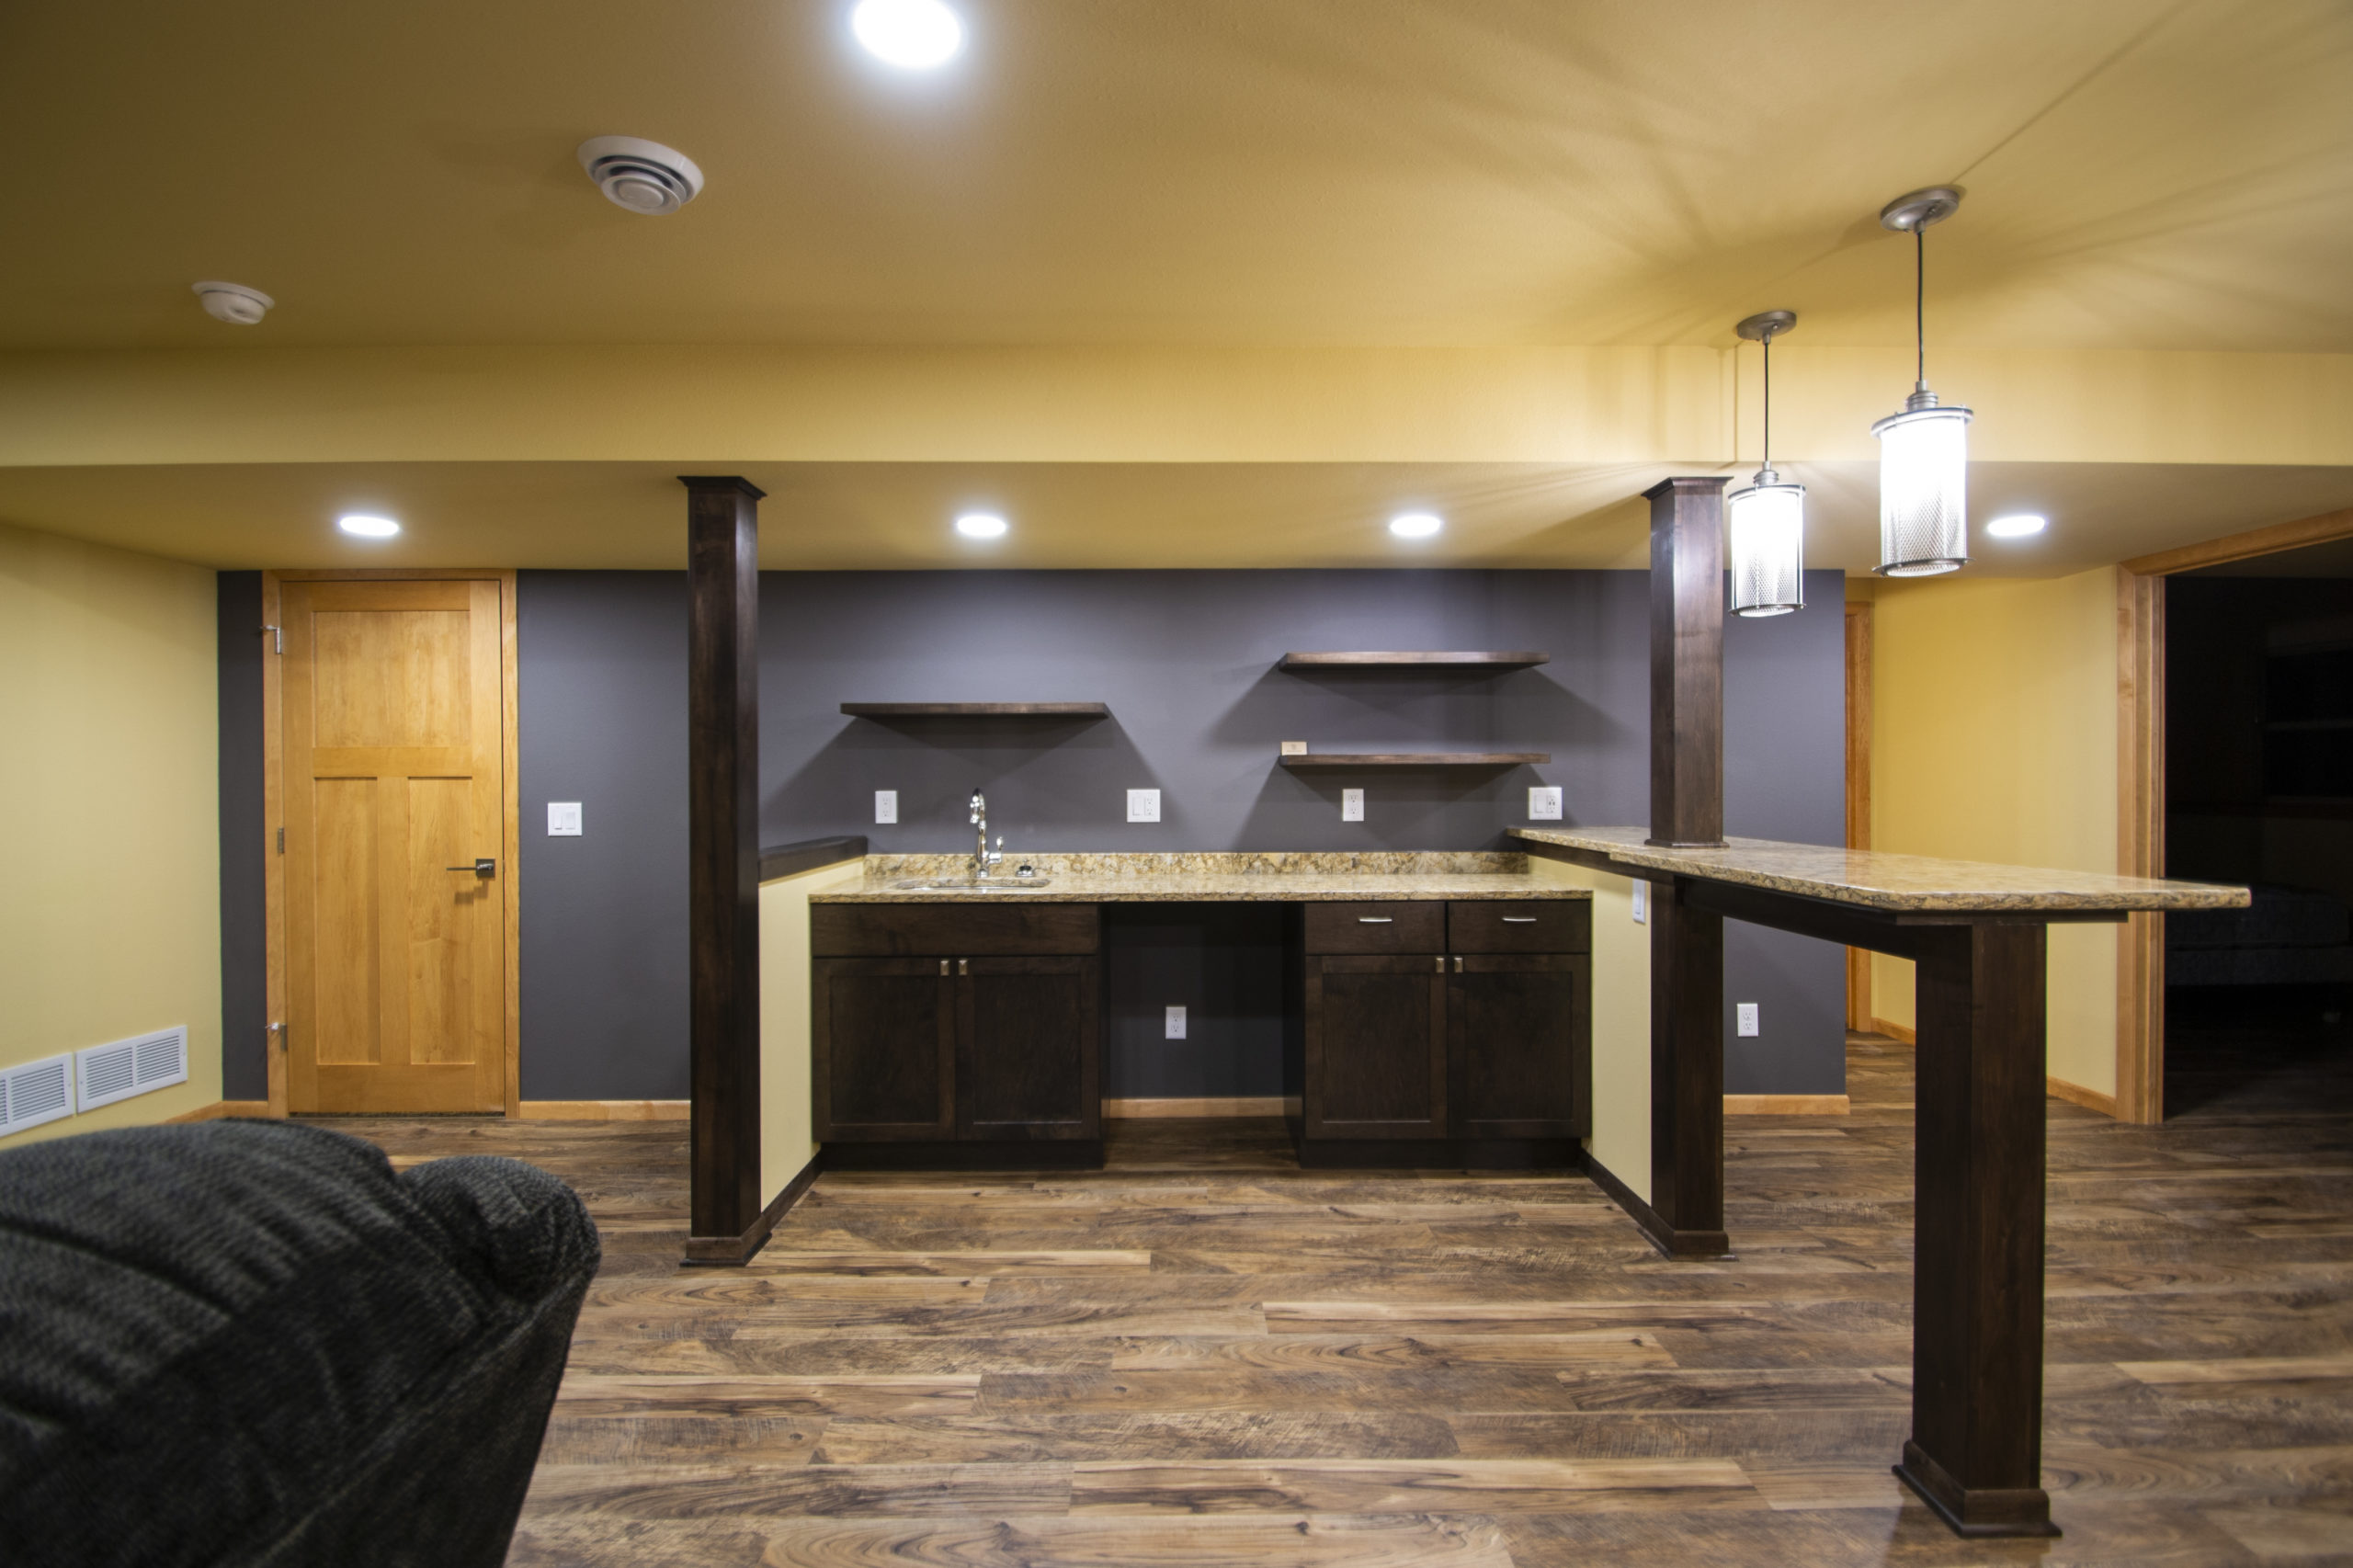 Thumbnail image of Basement Remodel with Custom Wet Bar - Verona, WI